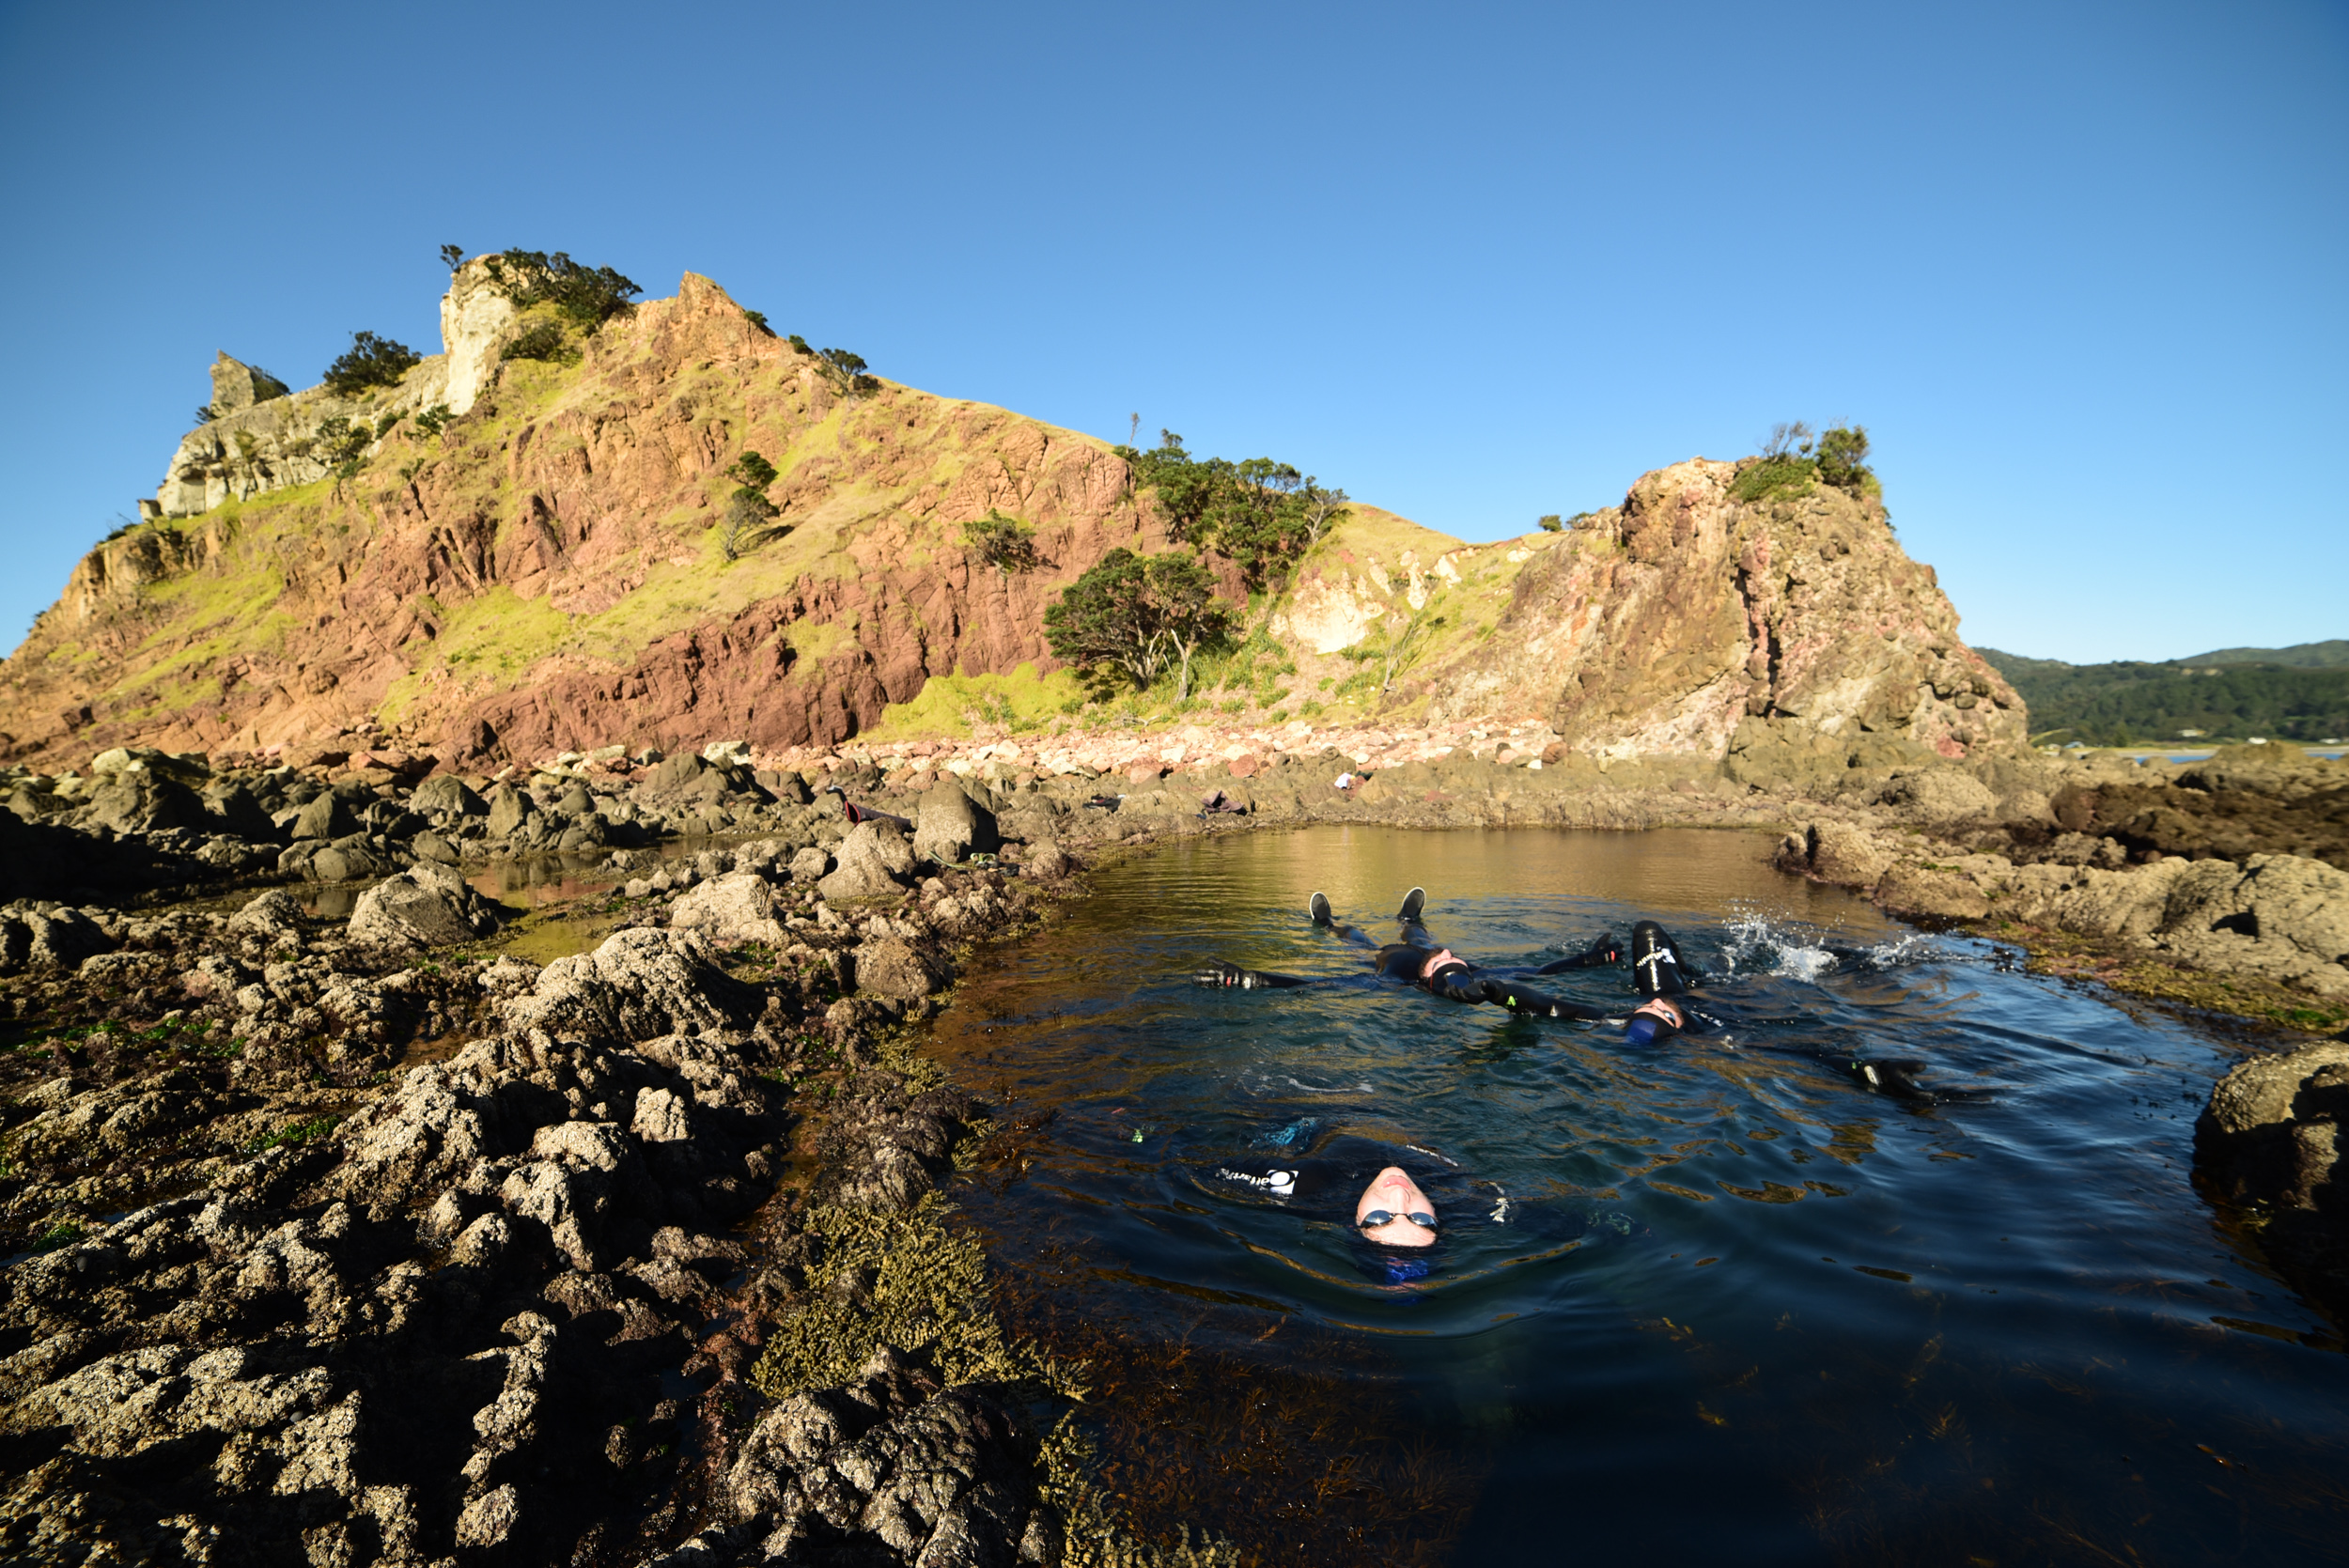 The Nudge exhibiting some Dark Arts in the Mermaid Rock Pool, Great Barrier Island